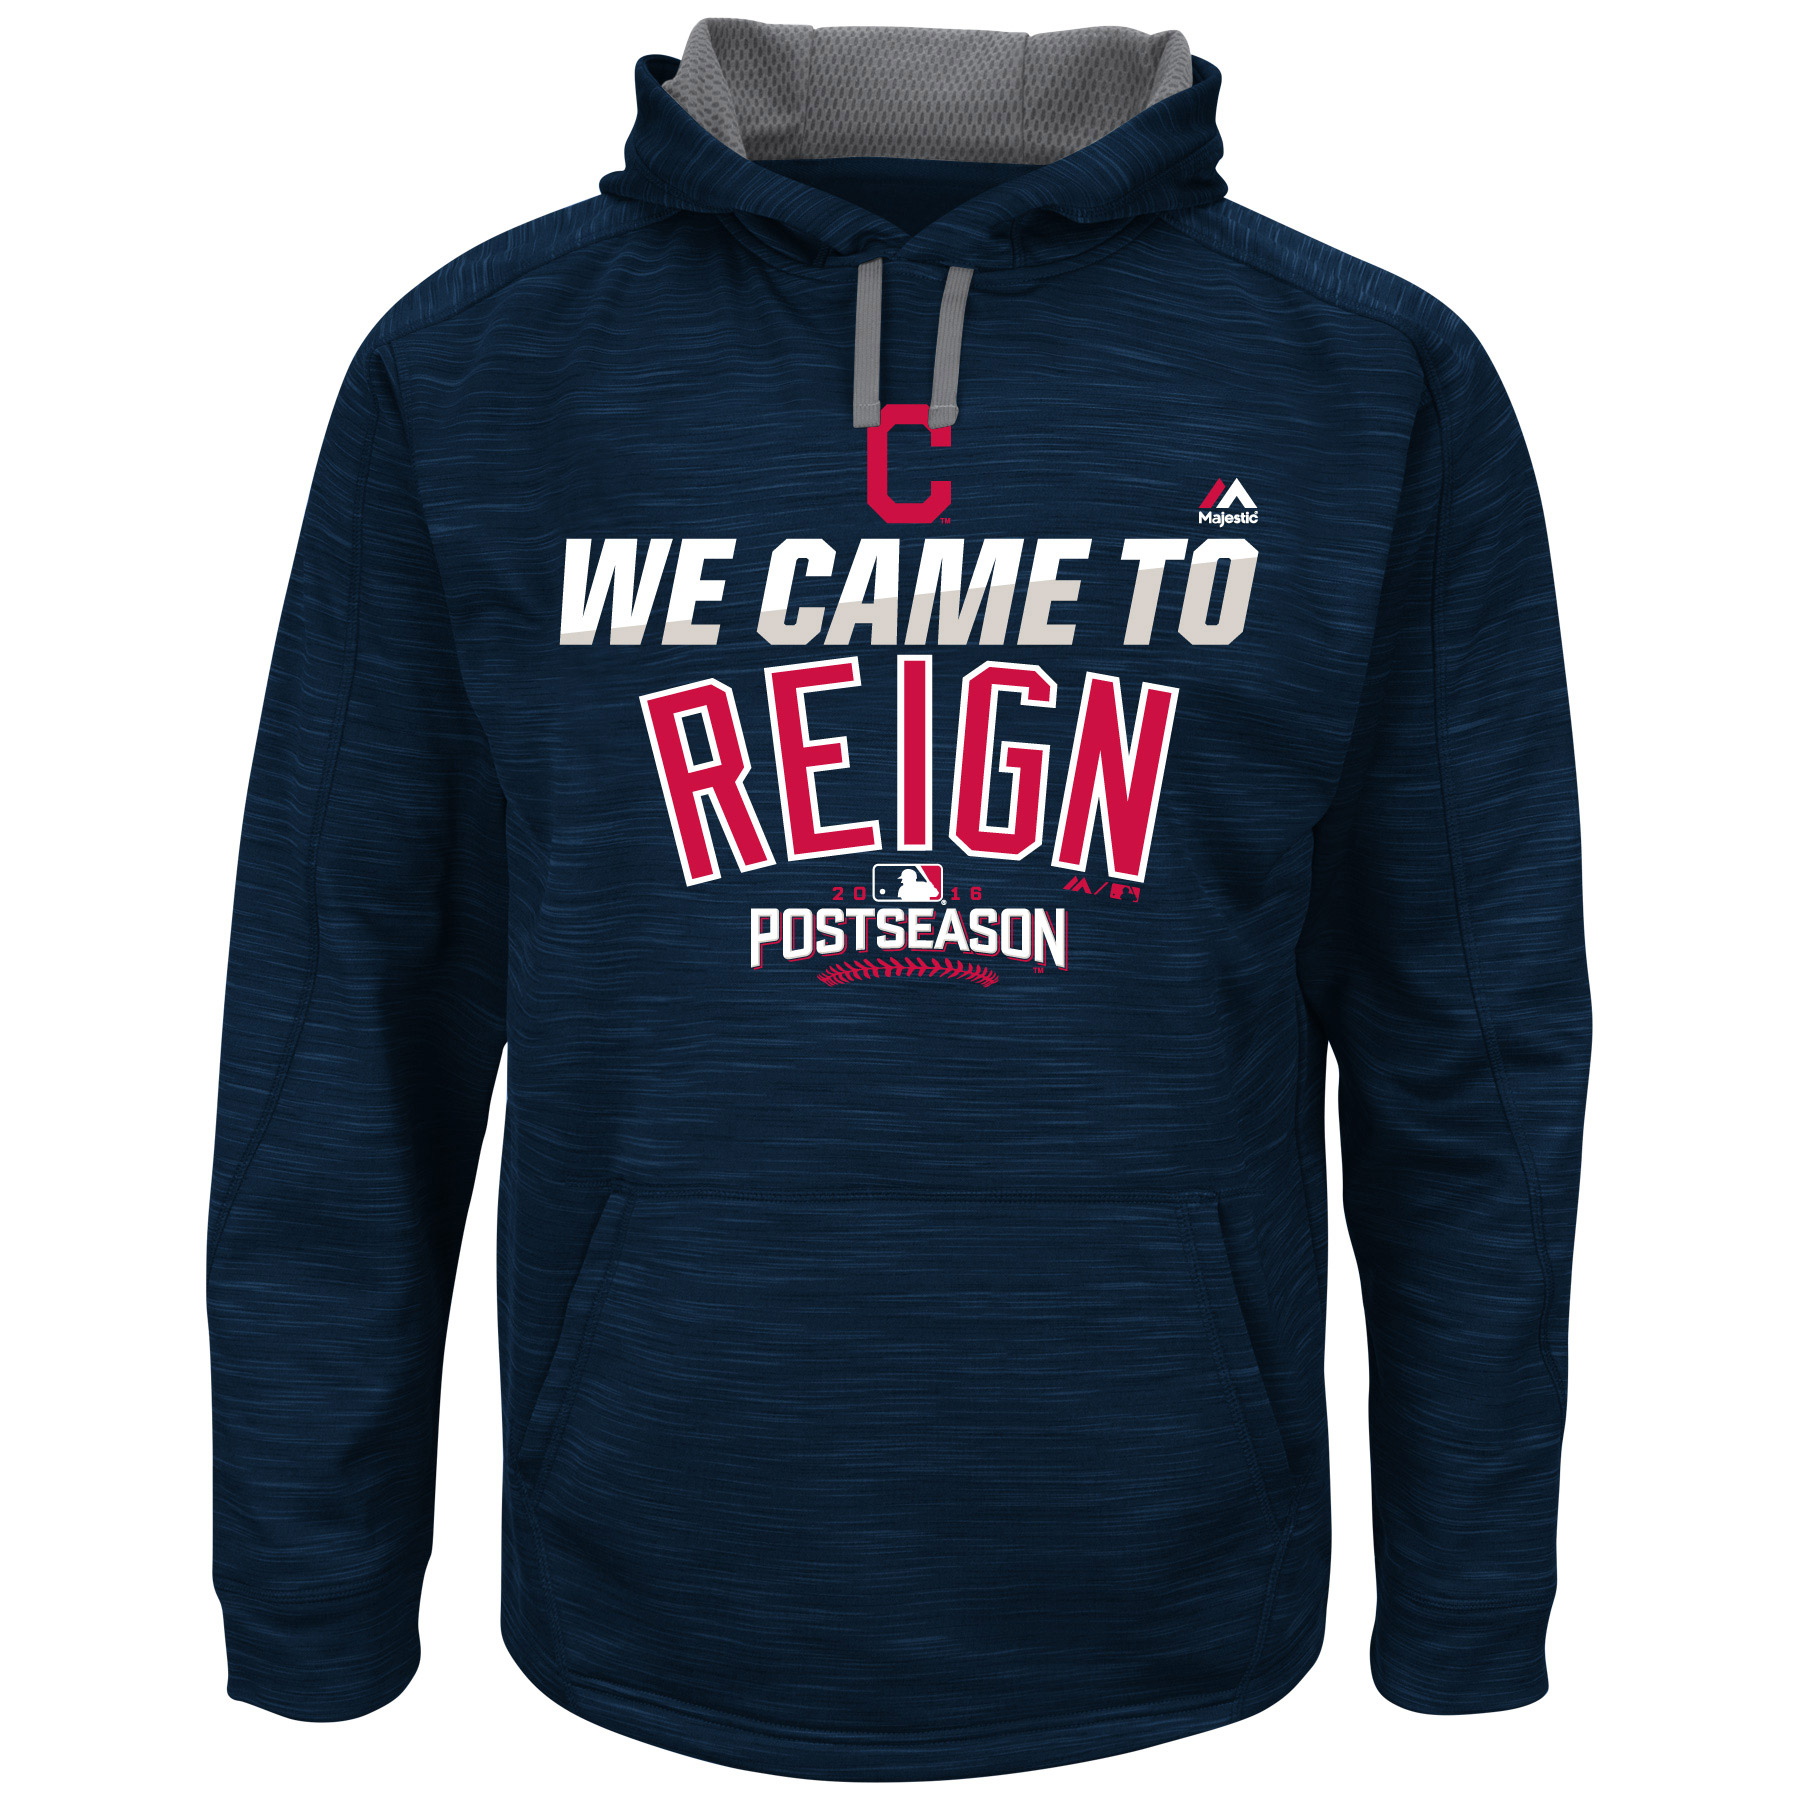 Cleveland Indians Majestic Big & Tall 2016 Postseason Authentic Collection We Came To Reign Streak Hoodie - Navy